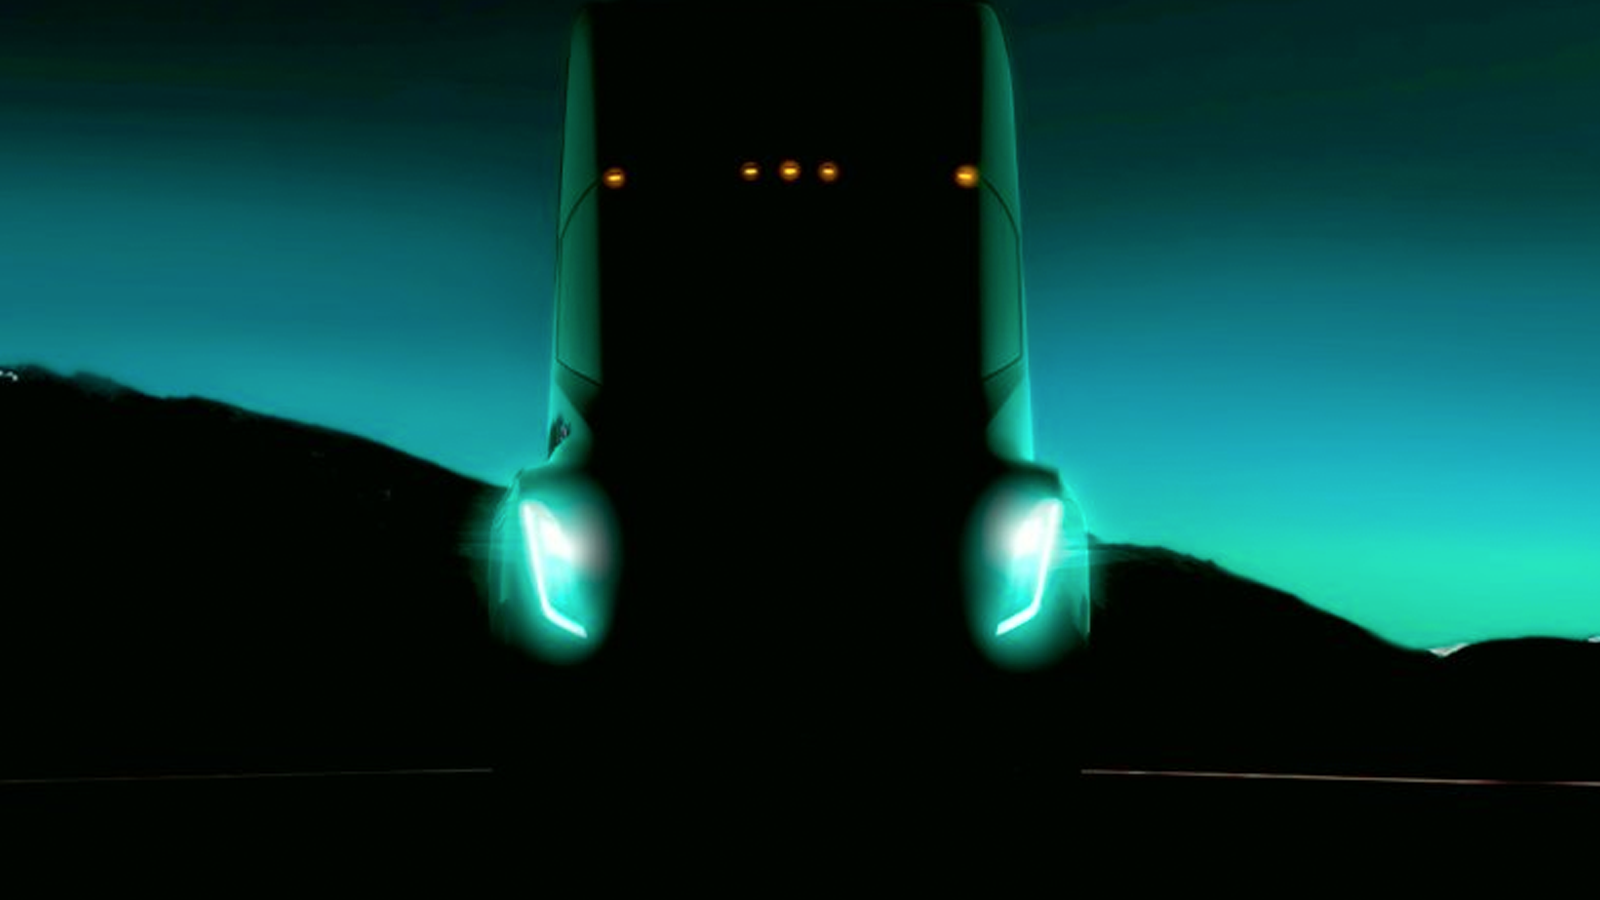 Tesla wants to test self-driving semi-trucks in Nevada